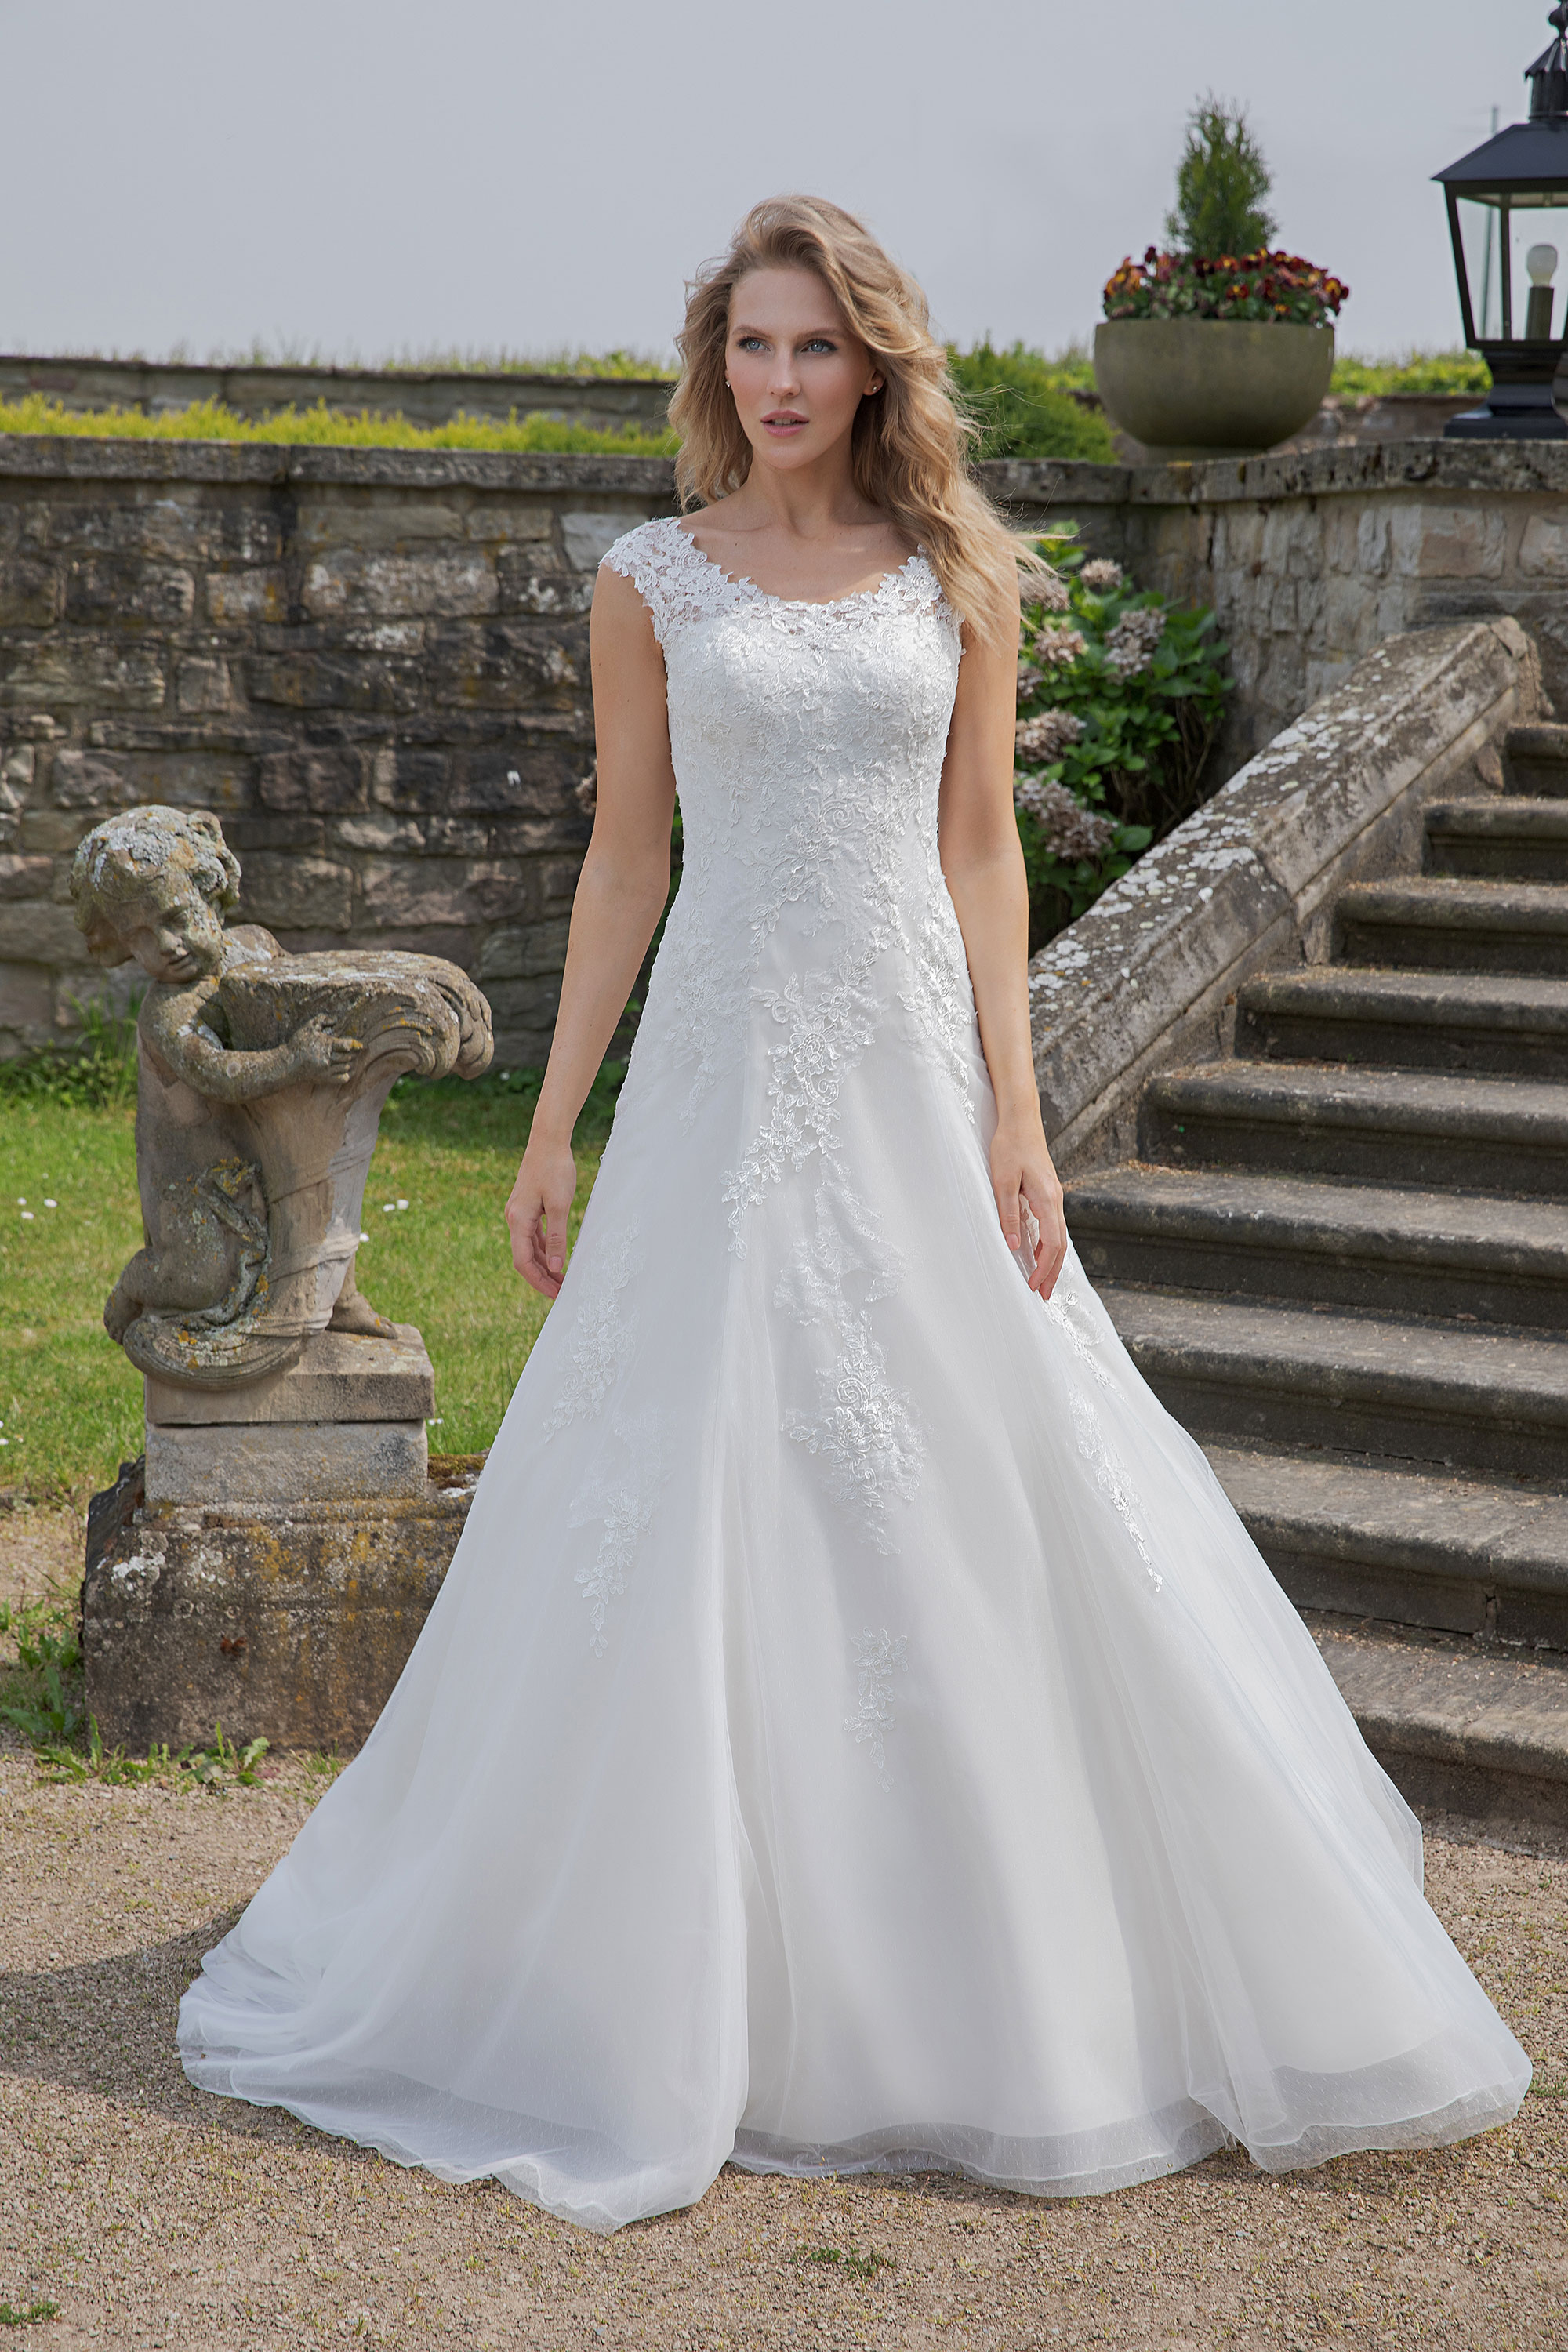 Amera Vera Brautkleid Alamea - Fashion Queen GmbH